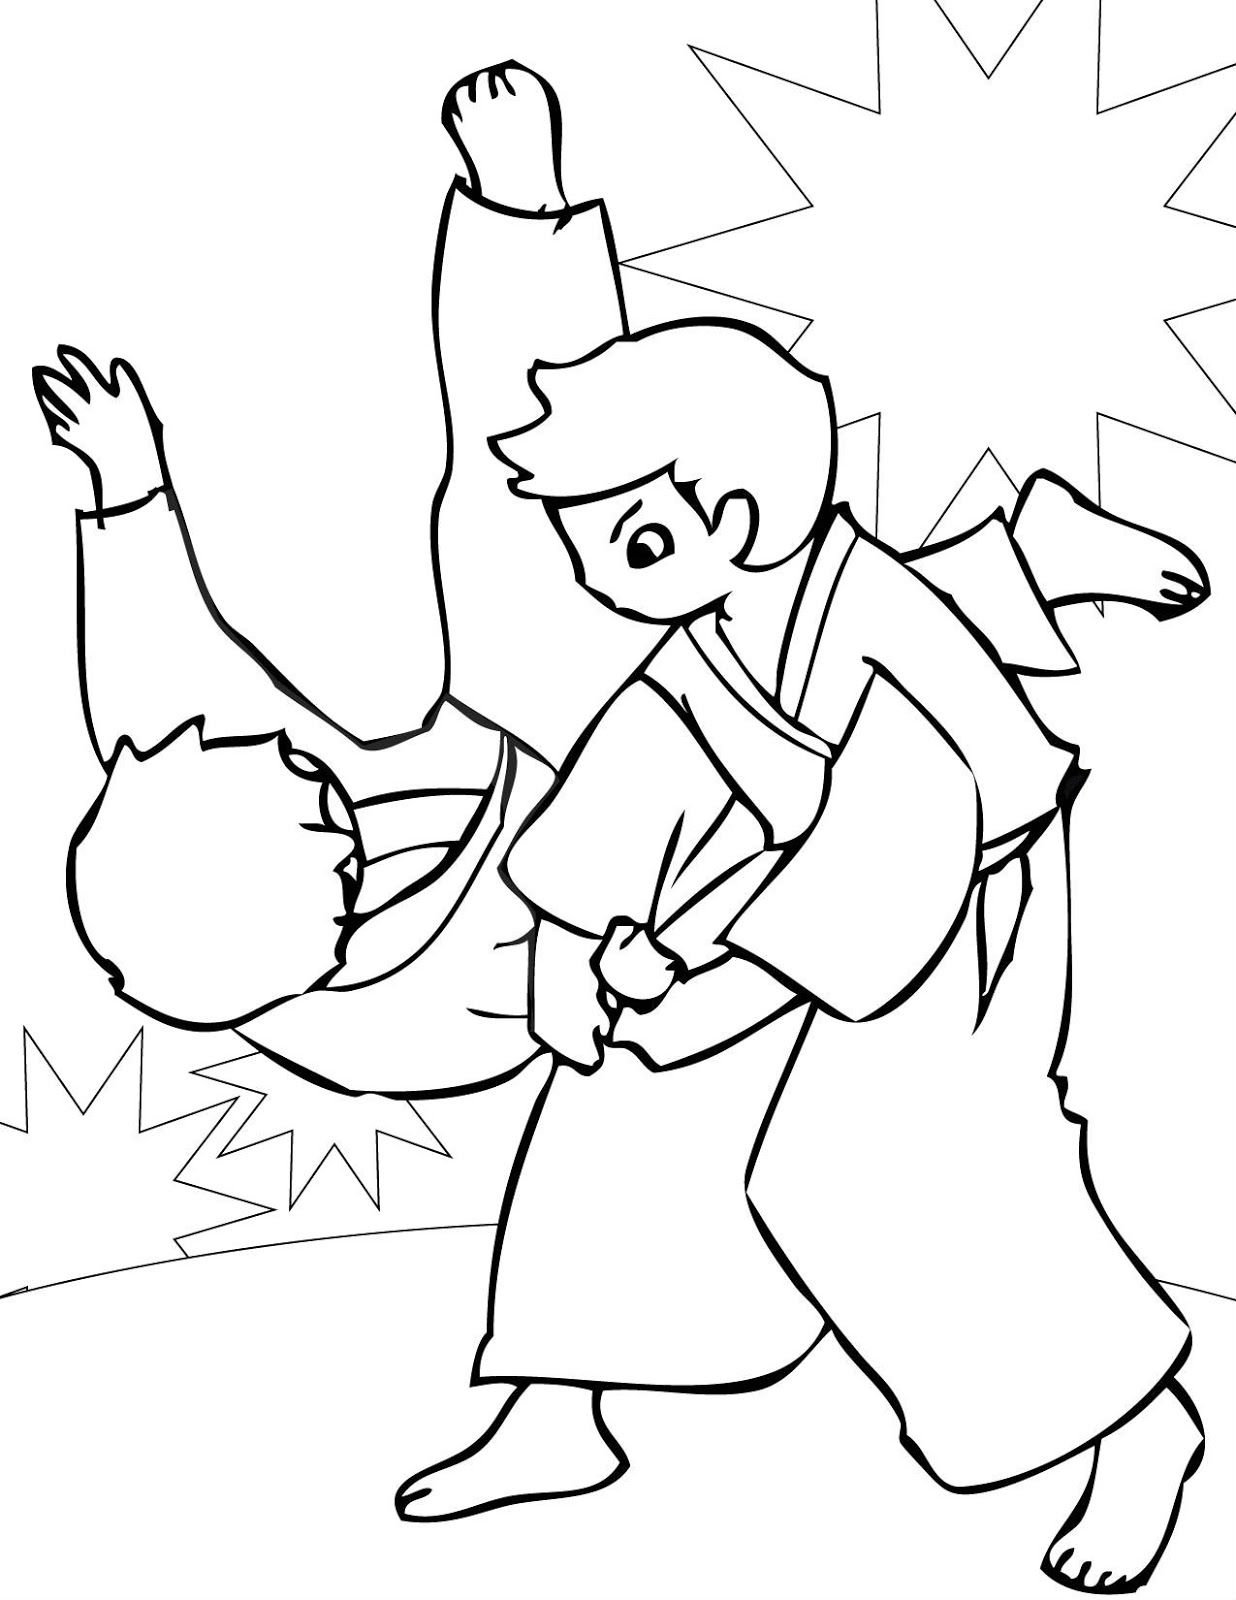 karate coloring pages free - judo coloring pages coloring home